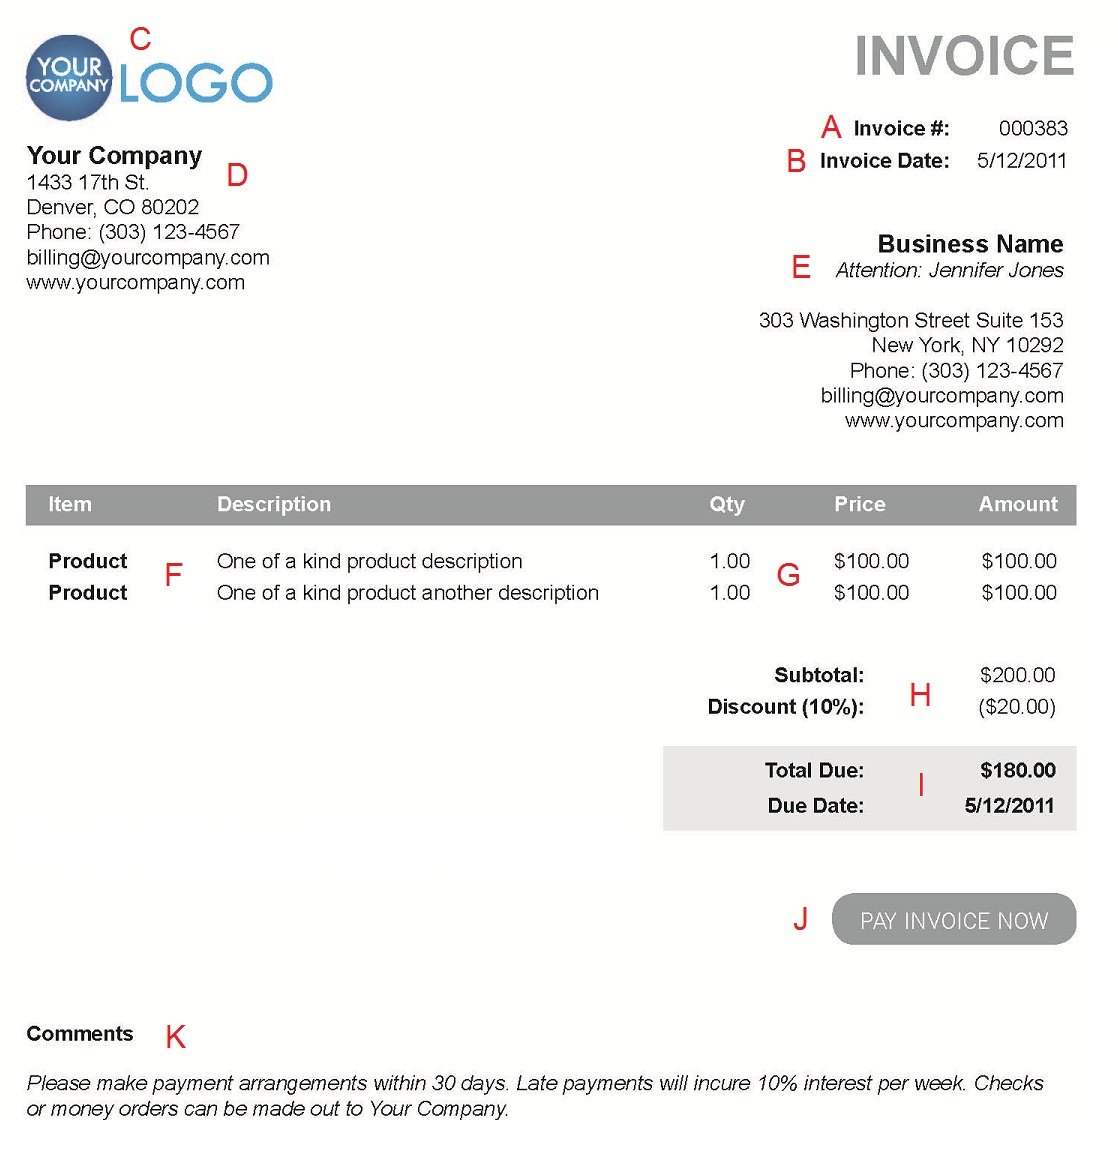 Poorboyzjeepclubus  Seductive The  Different Sections Of An Electronic Payment Invoice With Great A  With Delightful Online Invoice Free Also Dj Invoice Template In Addition Invoice Car And Download Invoice As Well As Freshbooks Invoice Template Additionally Stripe Send Invoice From Paysimplecom With Poorboyzjeepclubus  Great The  Different Sections Of An Electronic Payment Invoice With Delightful A  And Seductive Online Invoice Free Also Dj Invoice Template In Addition Invoice Car From Paysimplecom